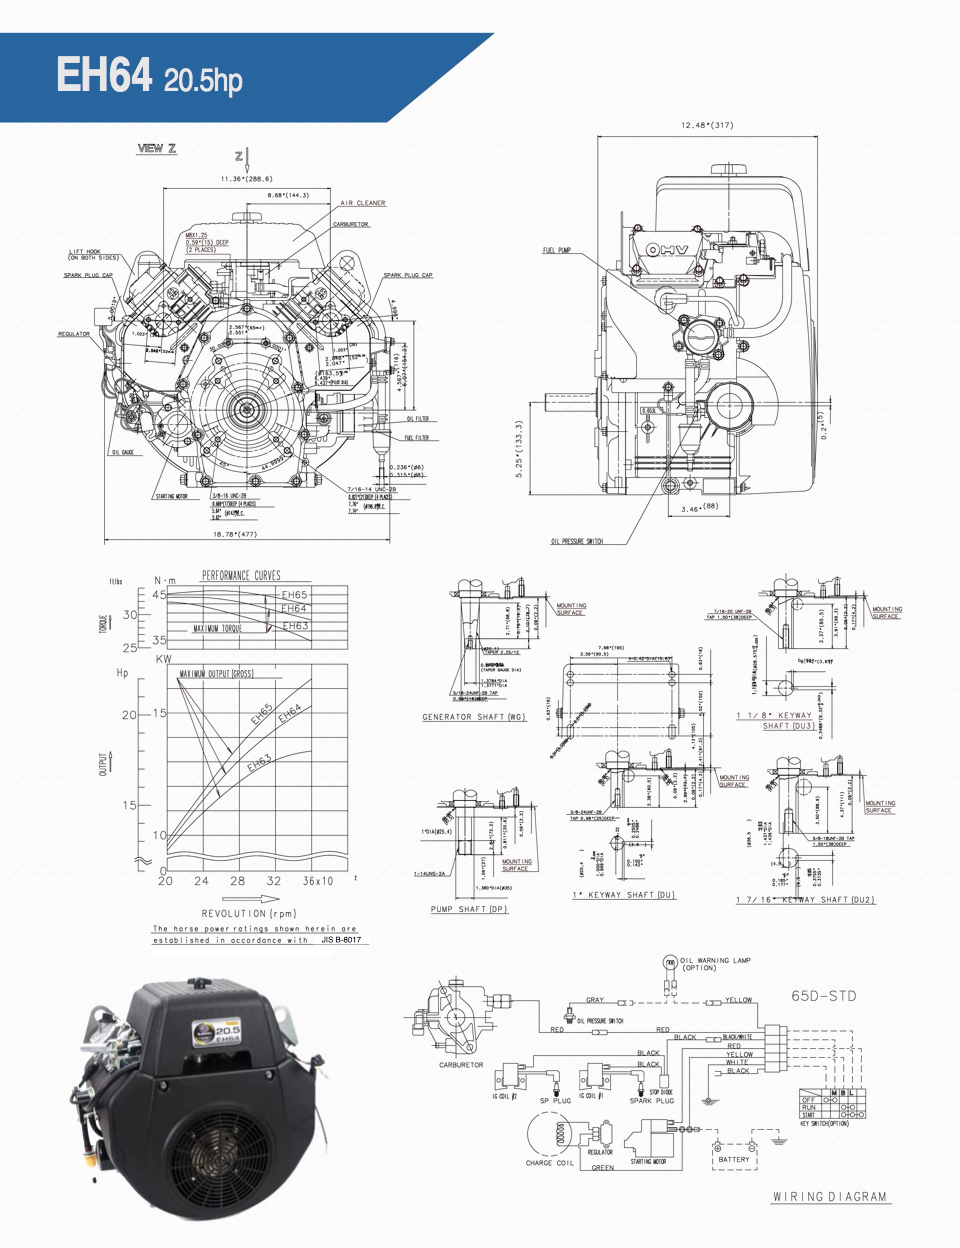 Eh64 Small Ohv V Twin Engine Technical Information Subaru Robin Diagram Download Pdf Version Owners Manual